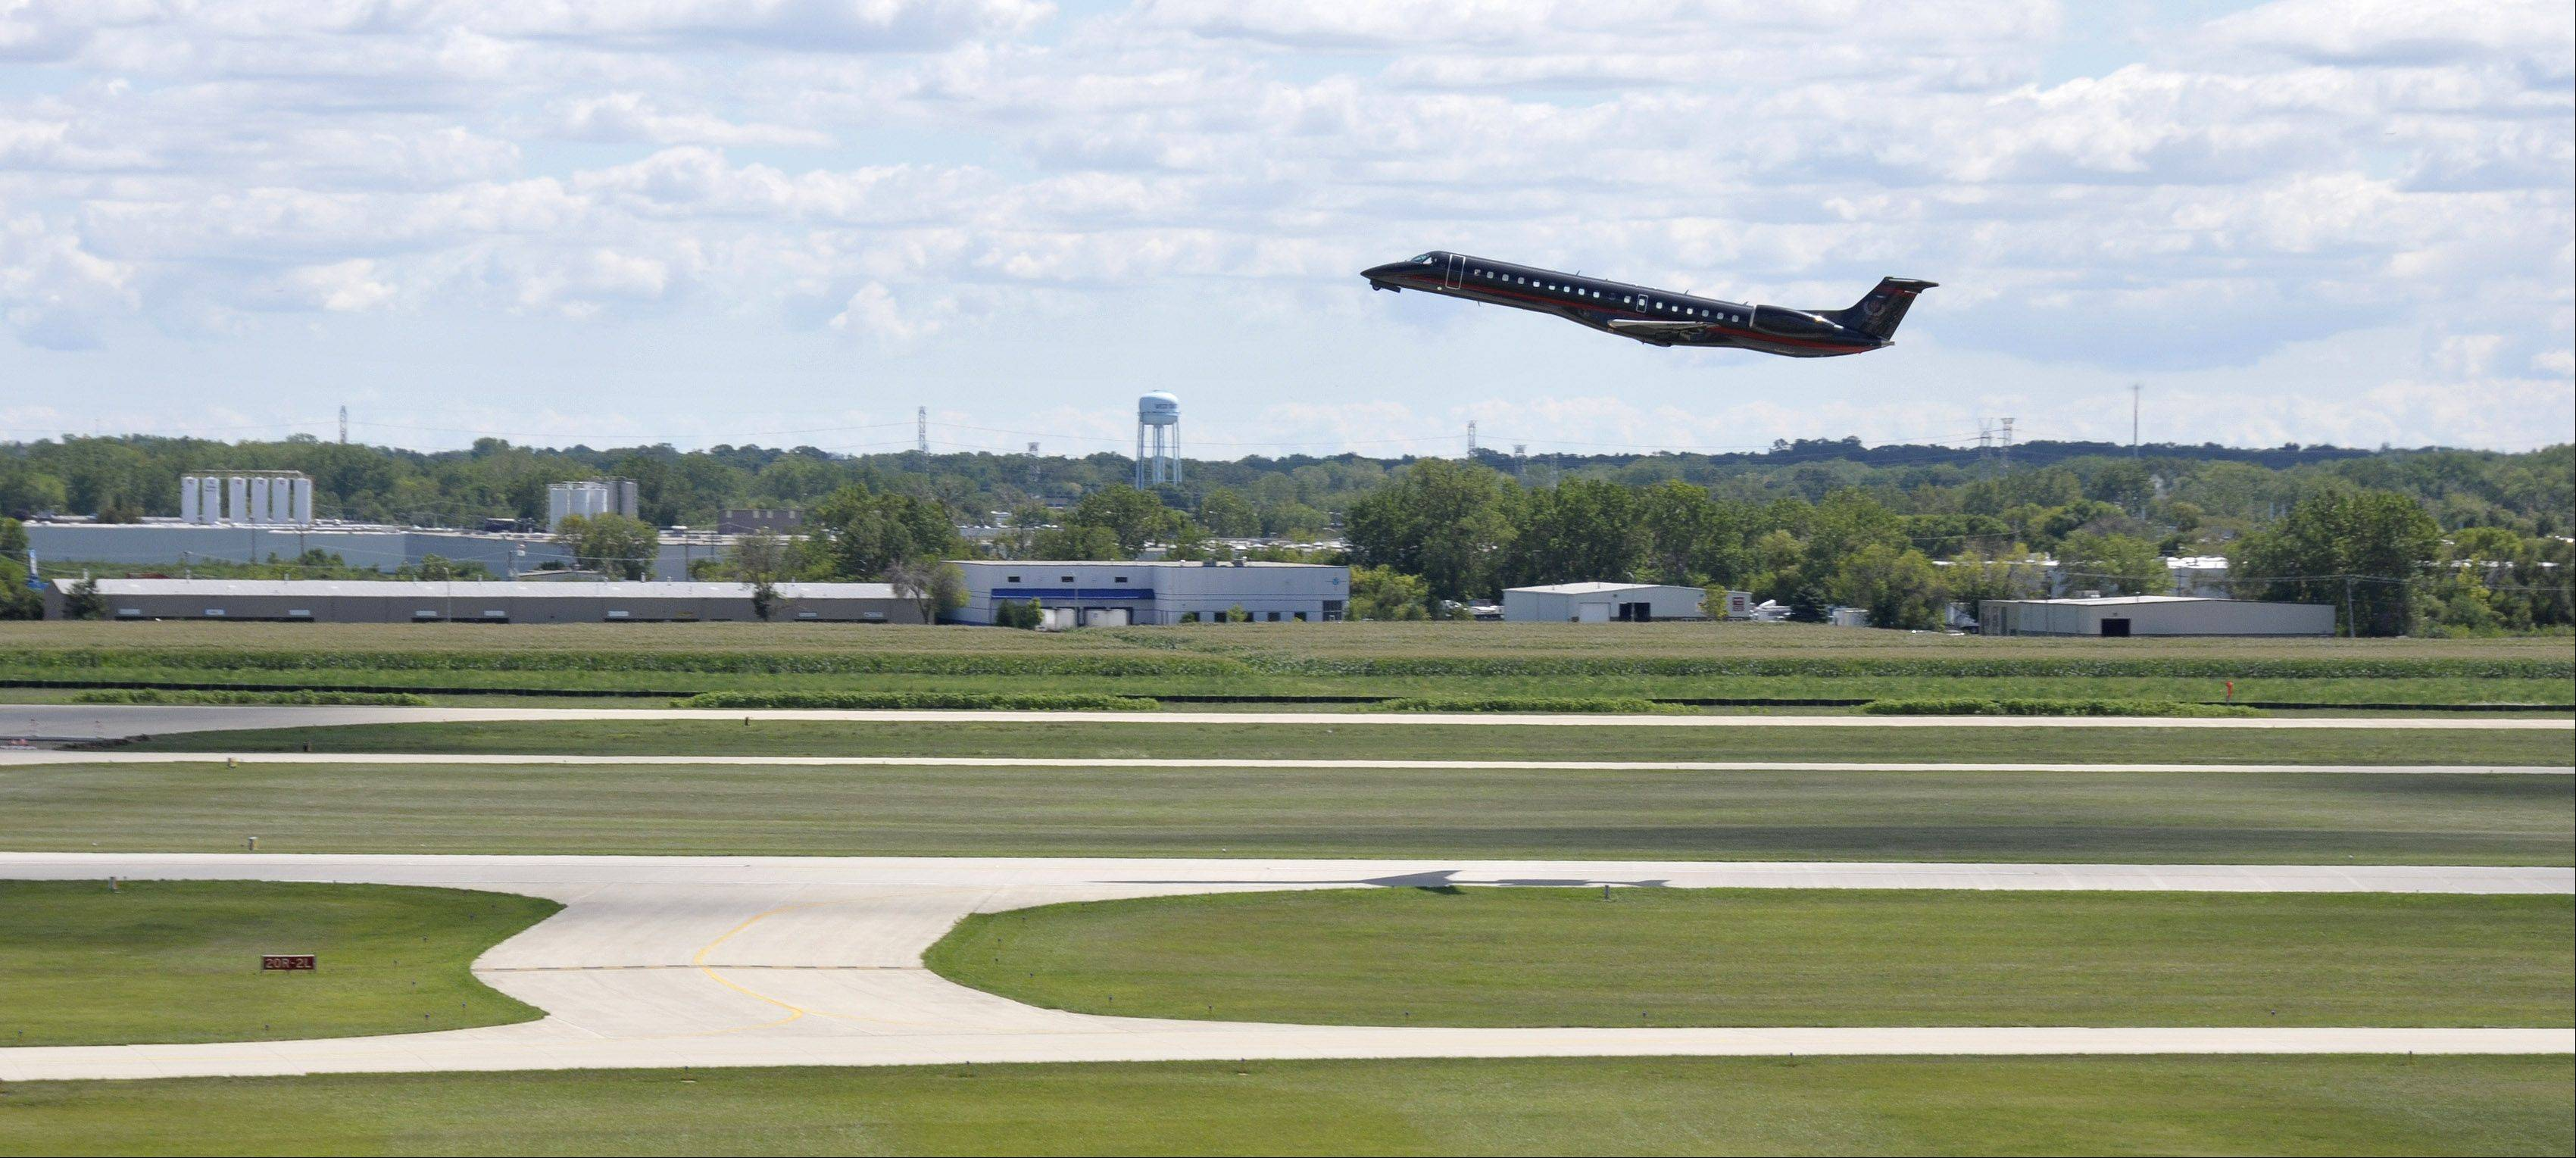 Private jet operations will become much more frequent at DuPage Airport in West Chicago next month during the Ryder Cup tournament.